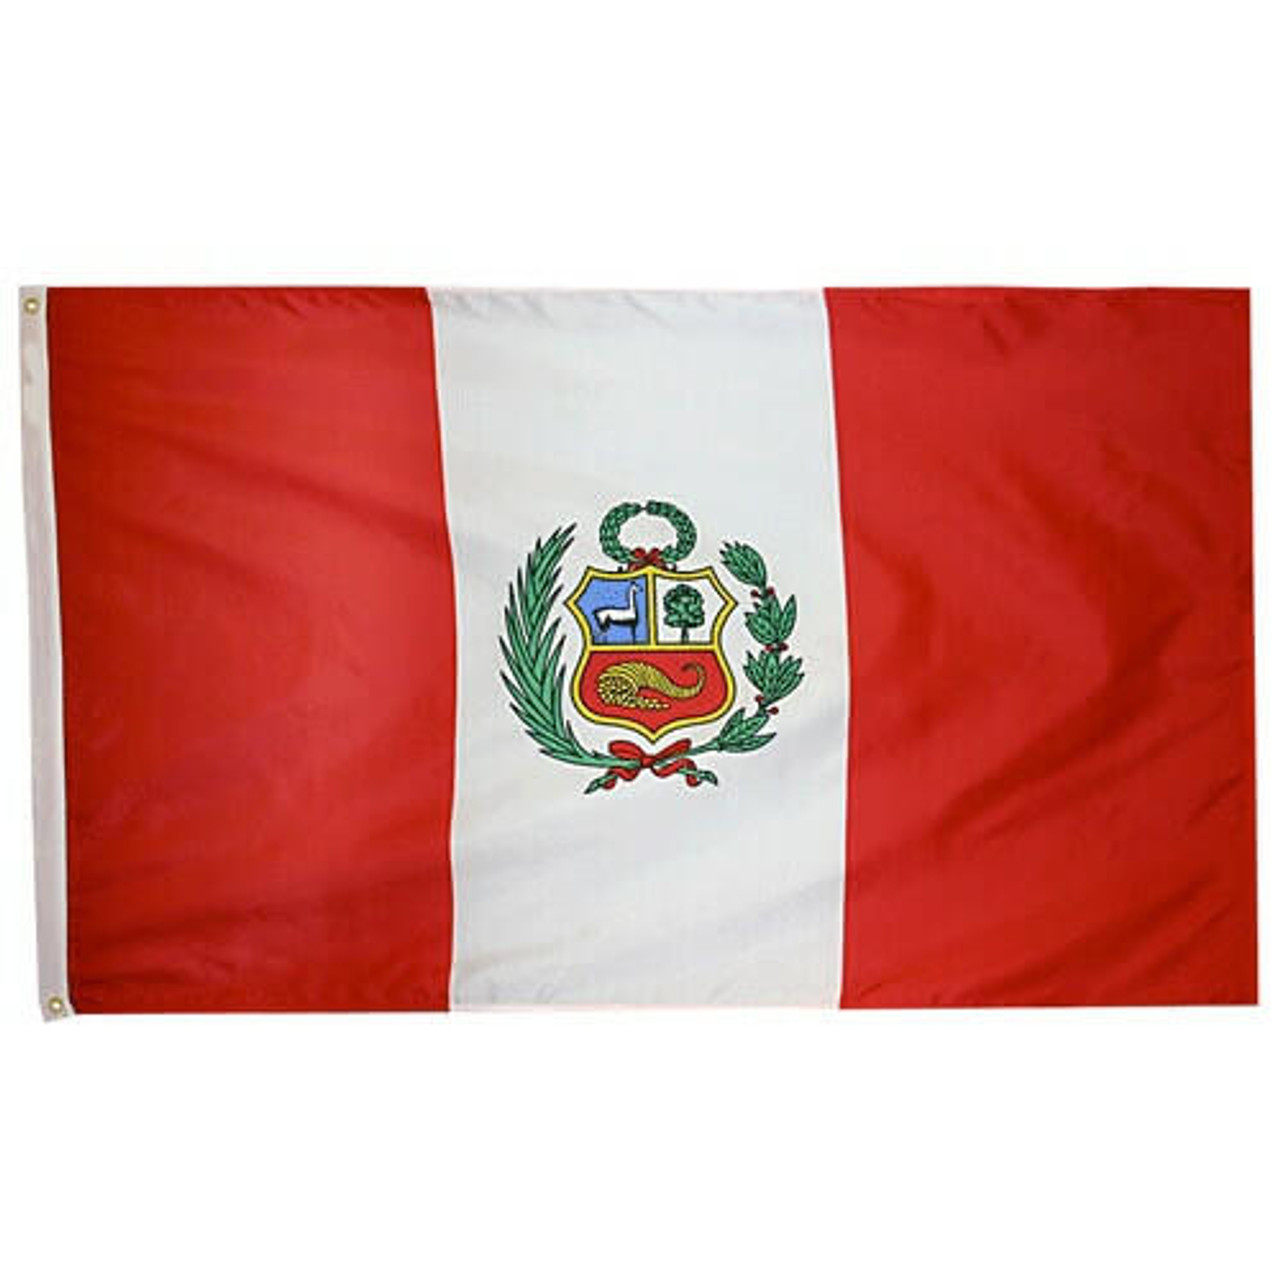 Peru Flag with 2 vertical red stripes at each end and a center white stripe. Center stripe bears Coat of Arms in the center.